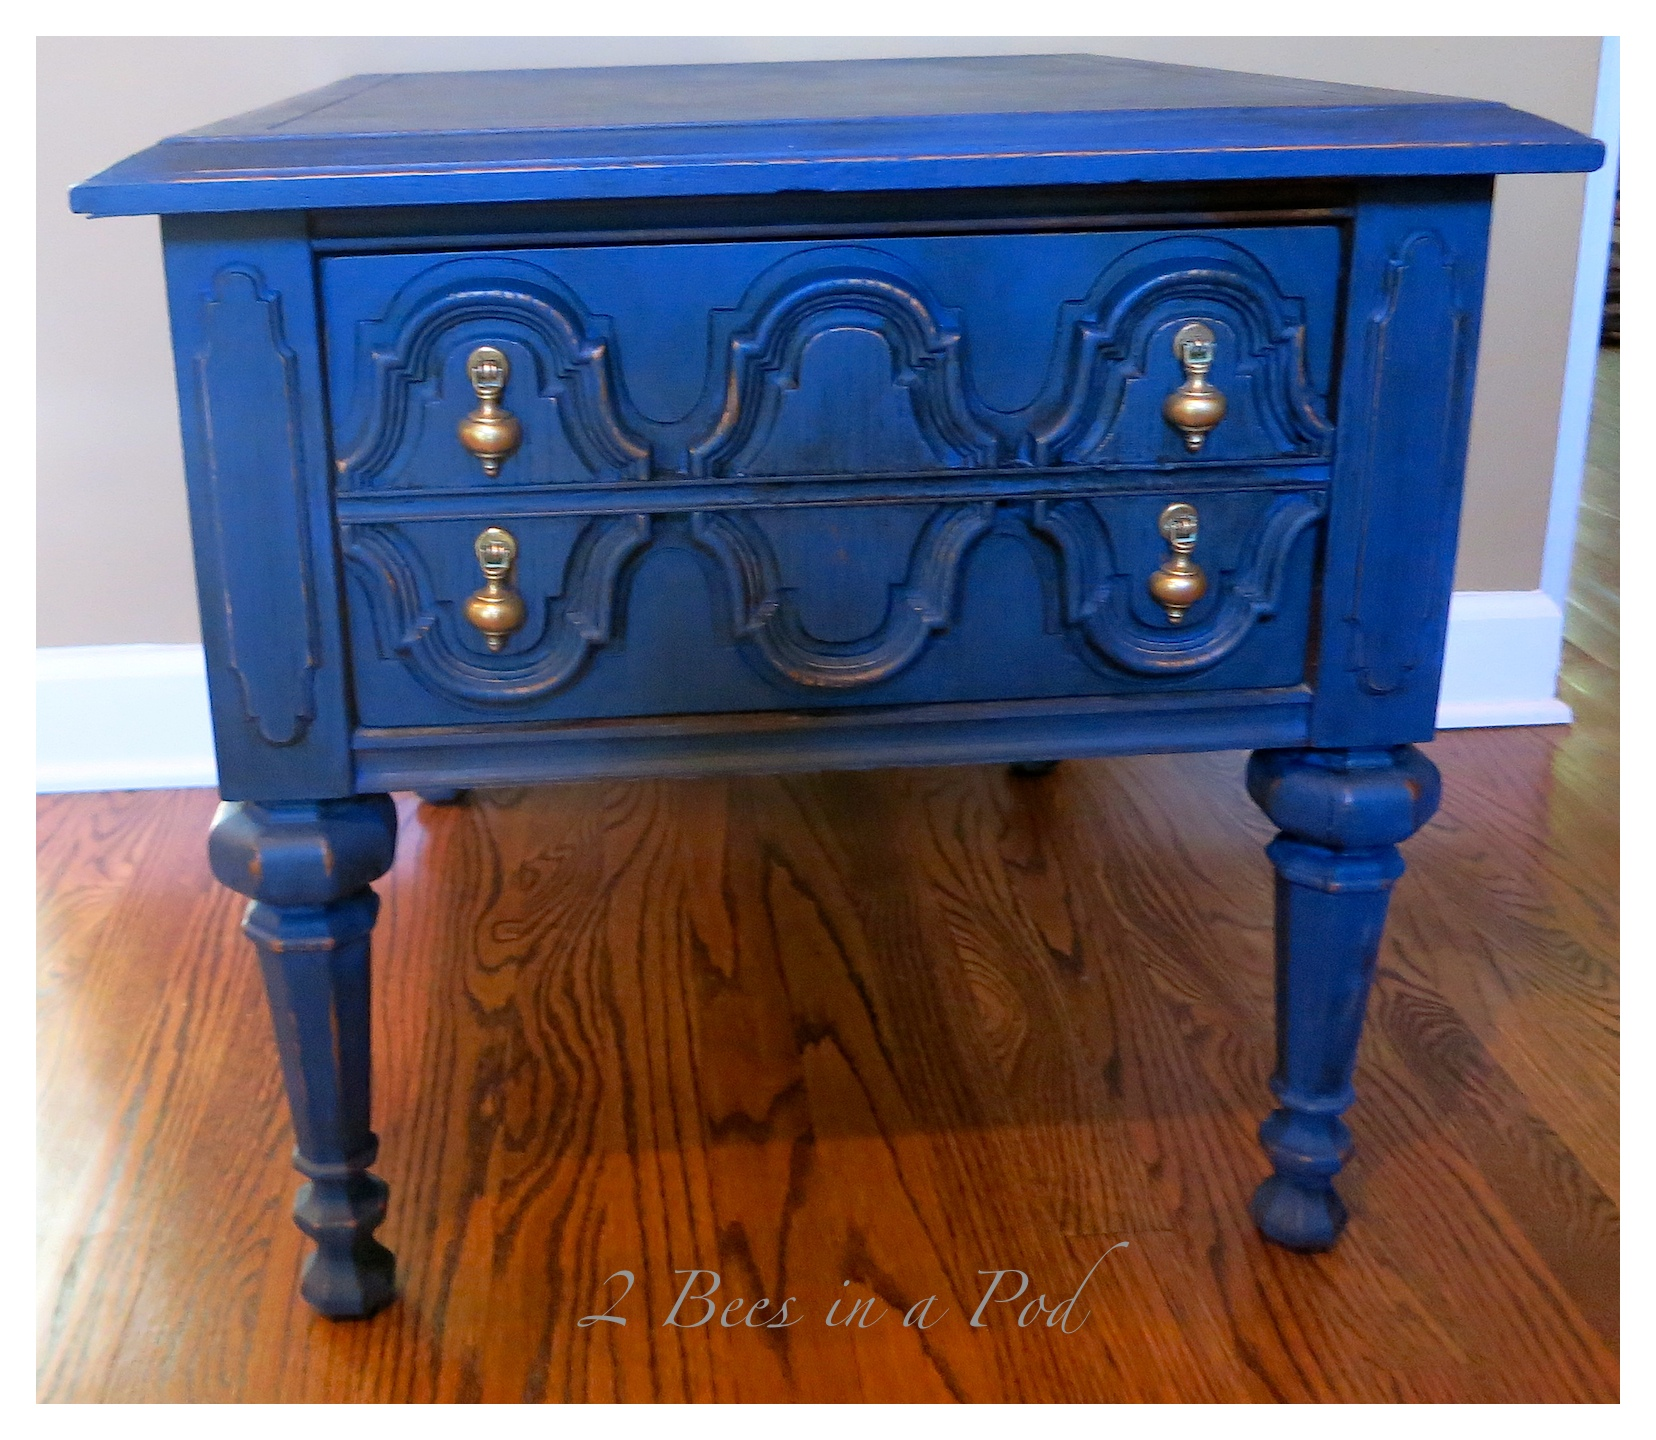 End table gets a makeover - using homemade chalk paint, light distressing and two was treatments. We even shined up the hardware using Brasso.